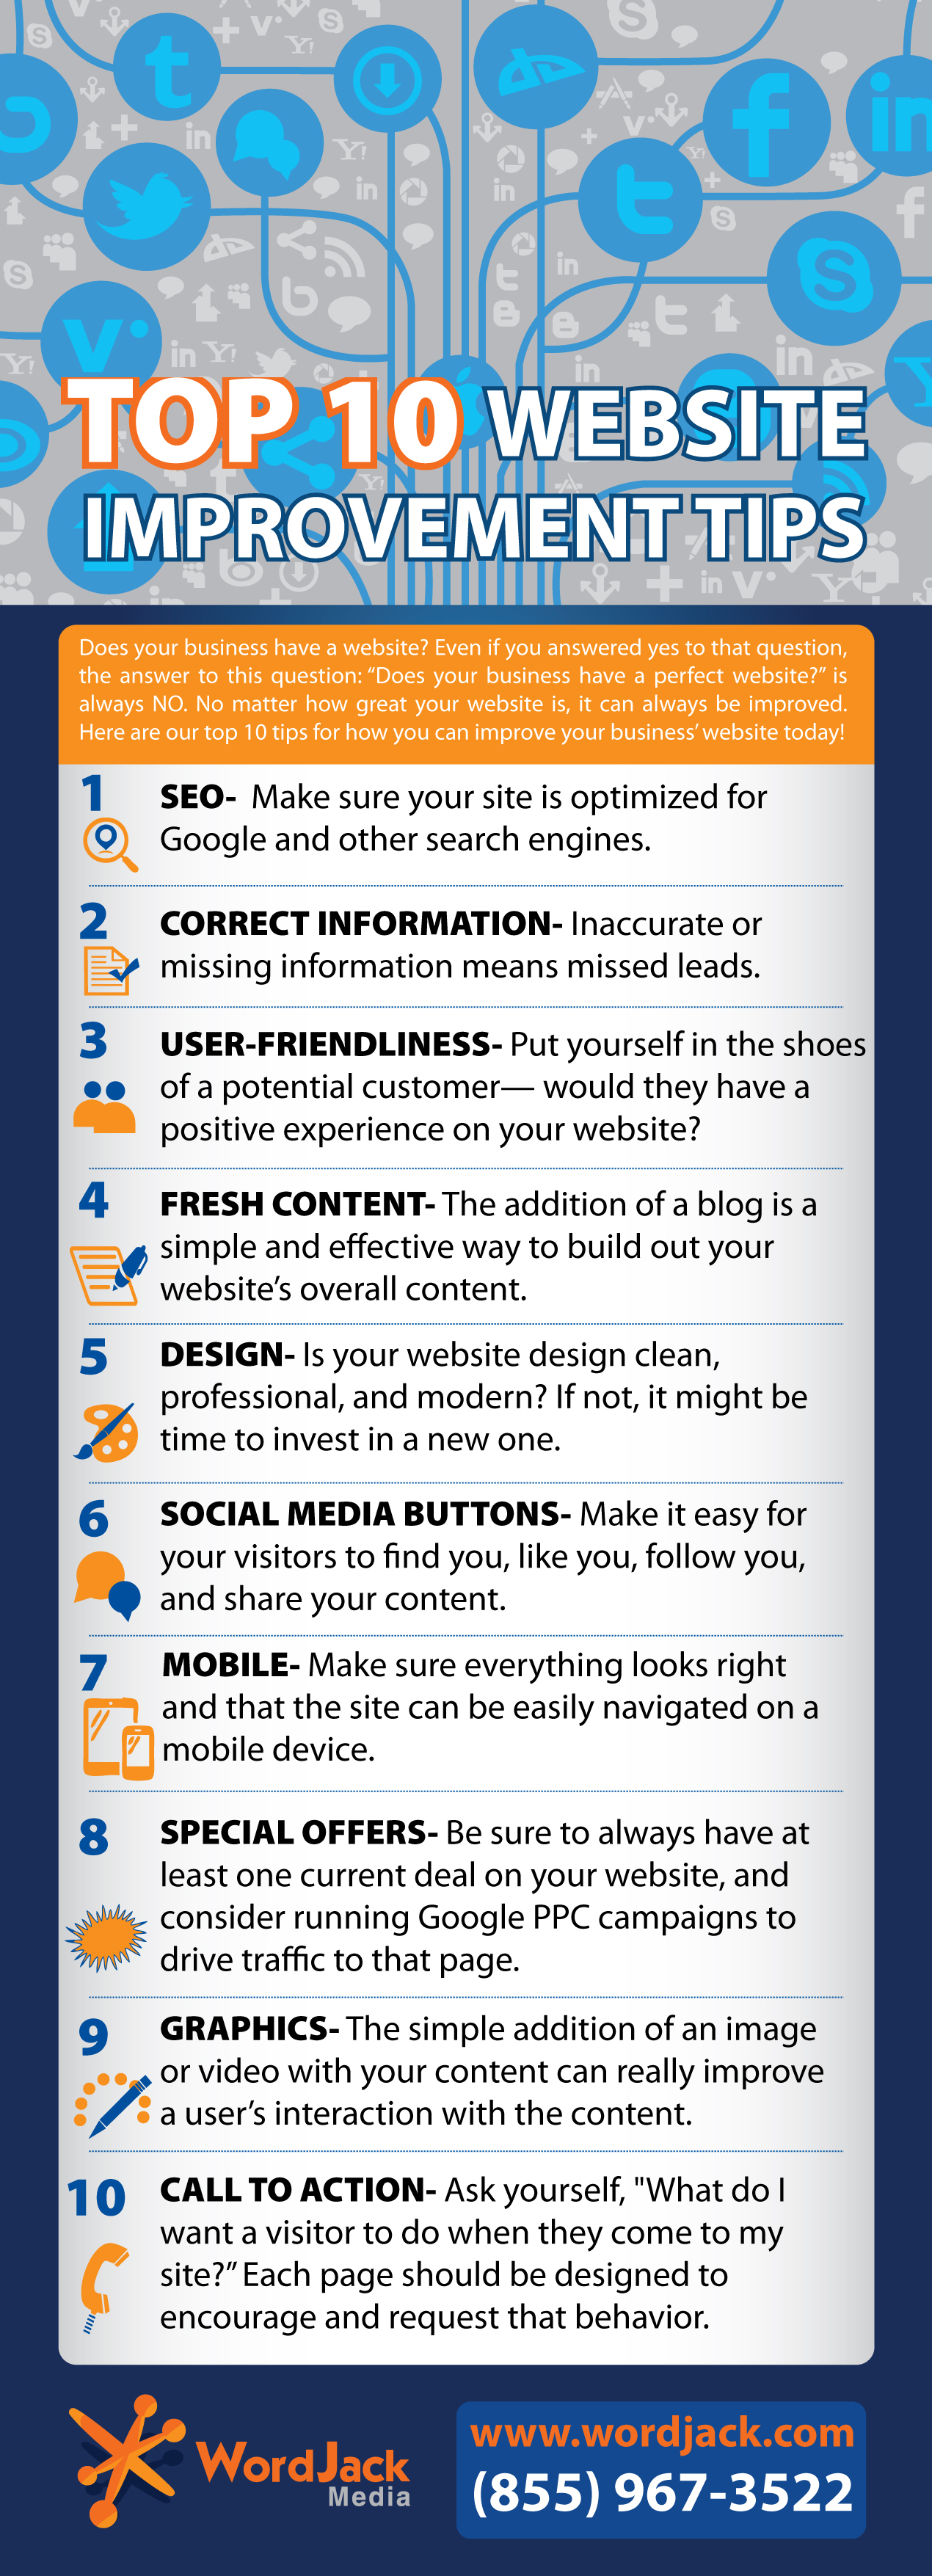 infographic: website improvement